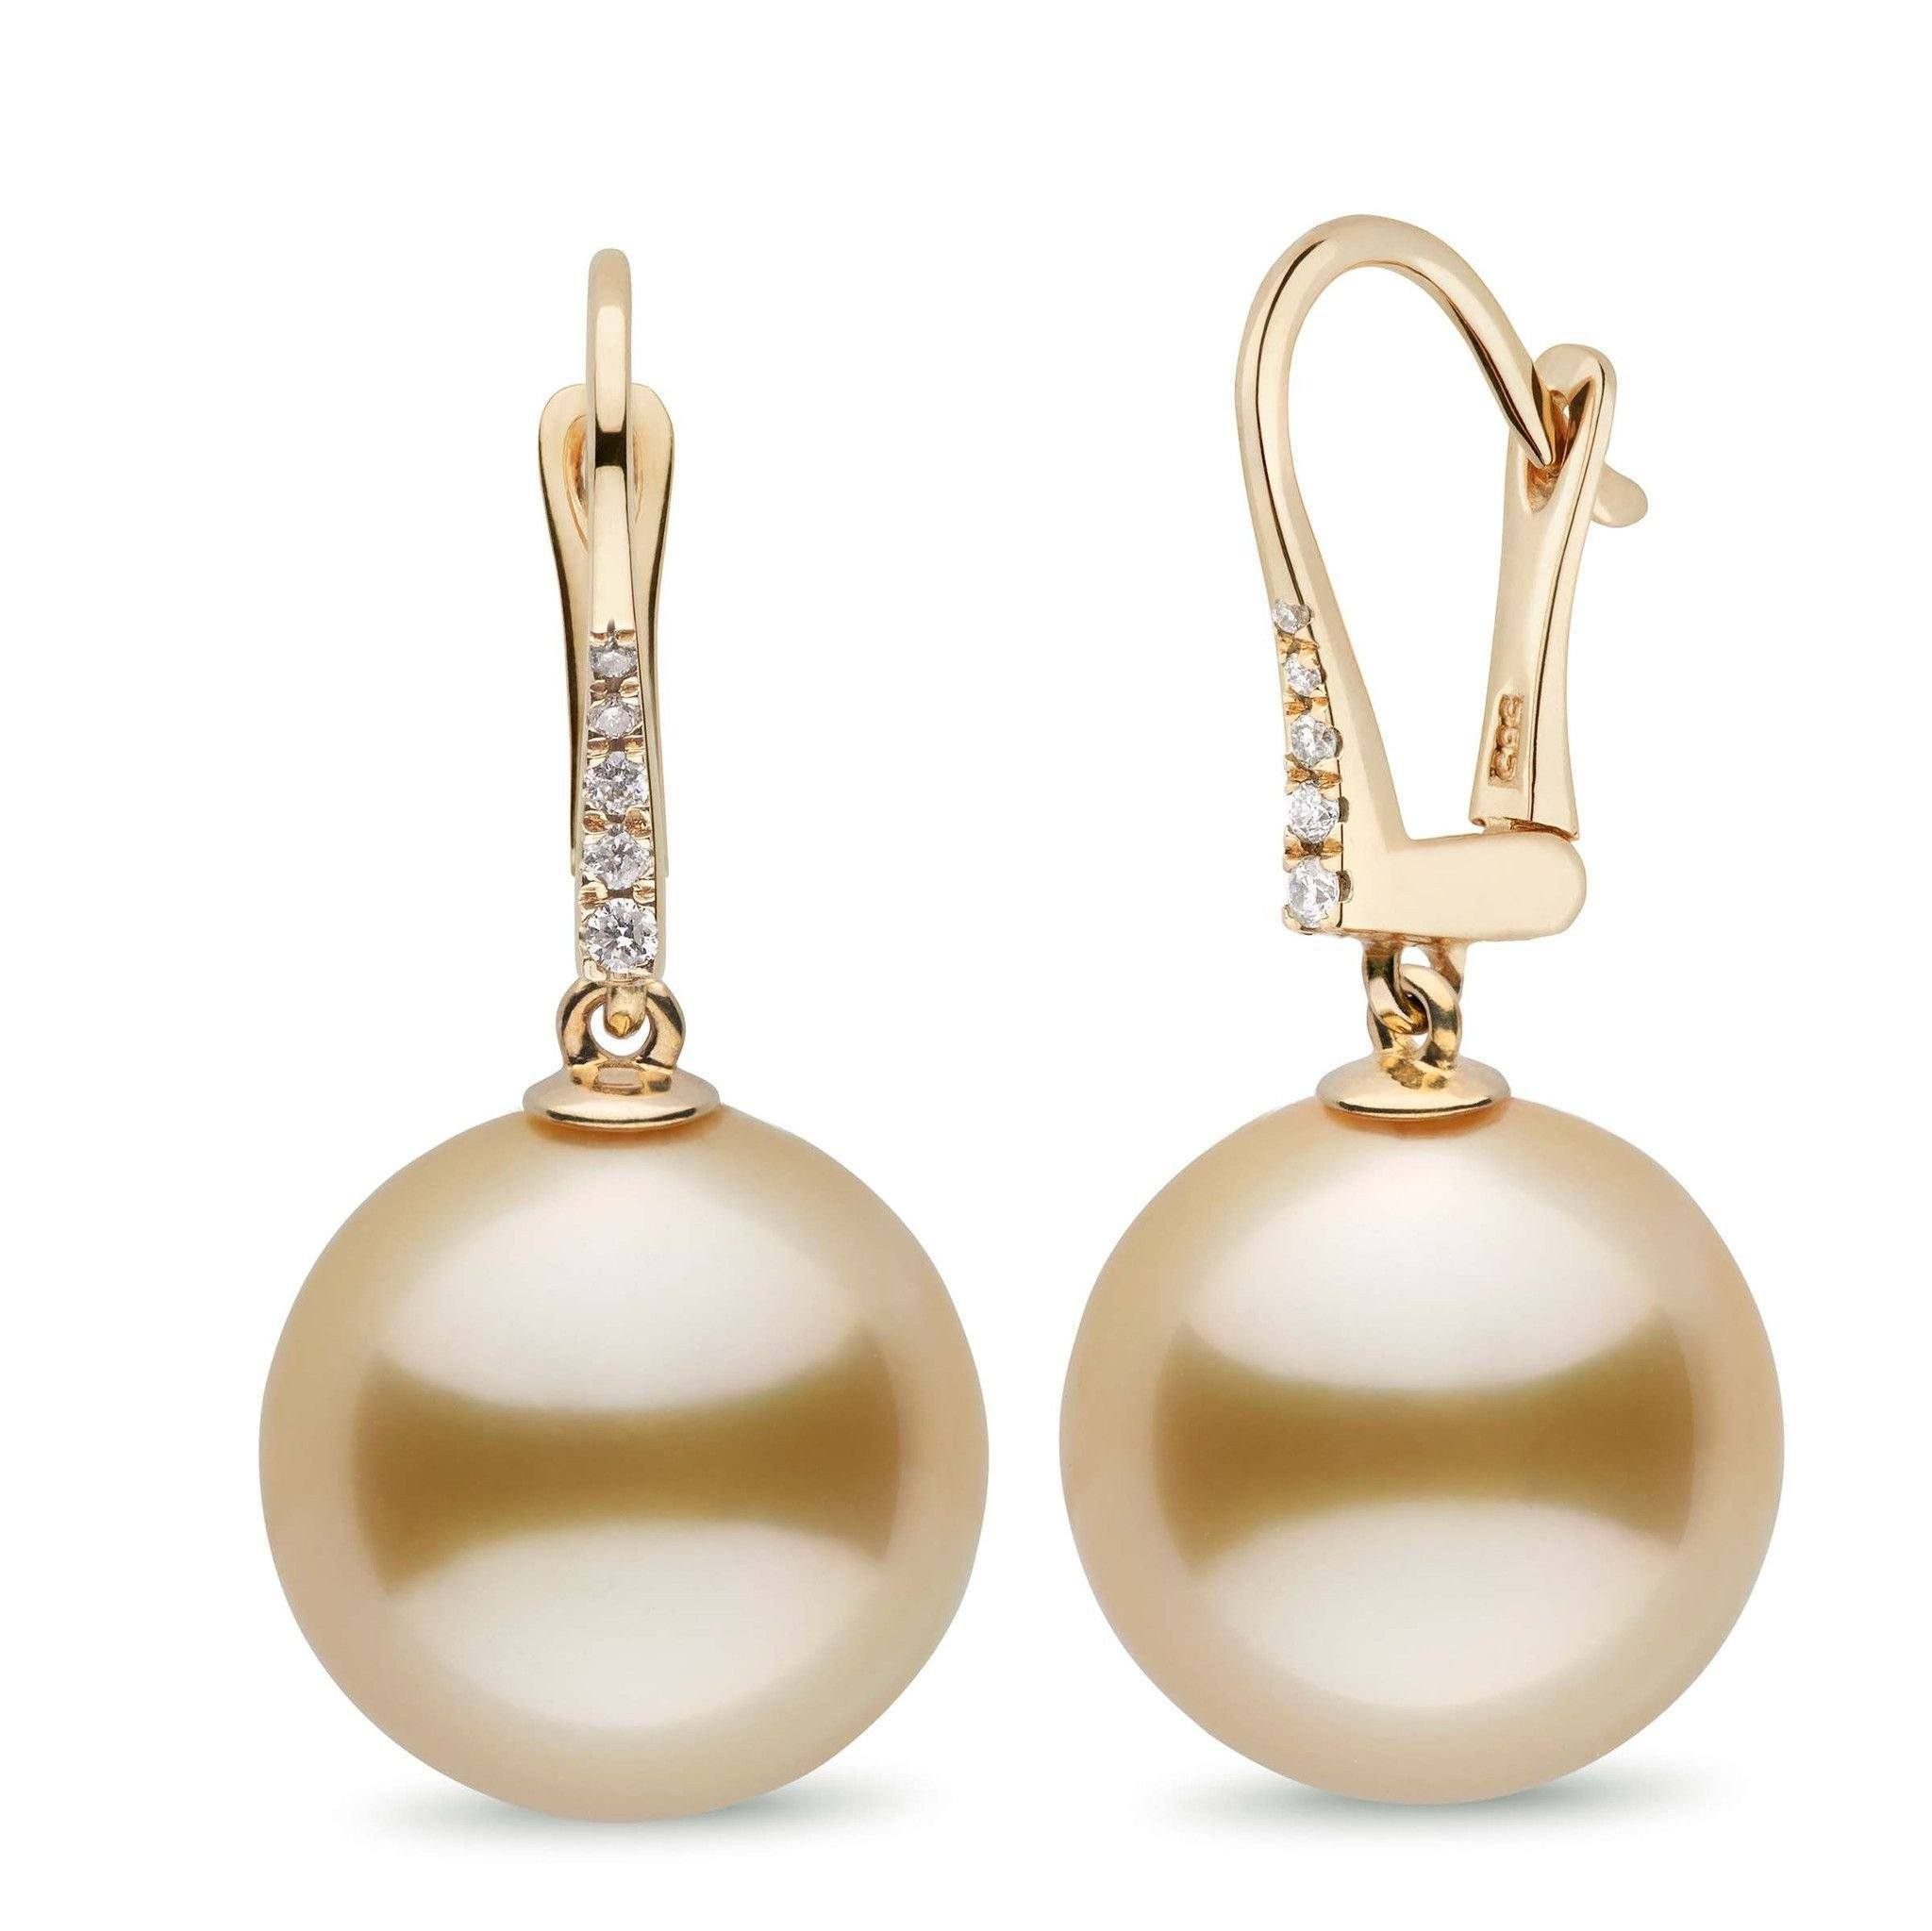 Allure Collection Golden South Sea 14.0-15.0 mm Pearl & Diamond Dangle Earrings